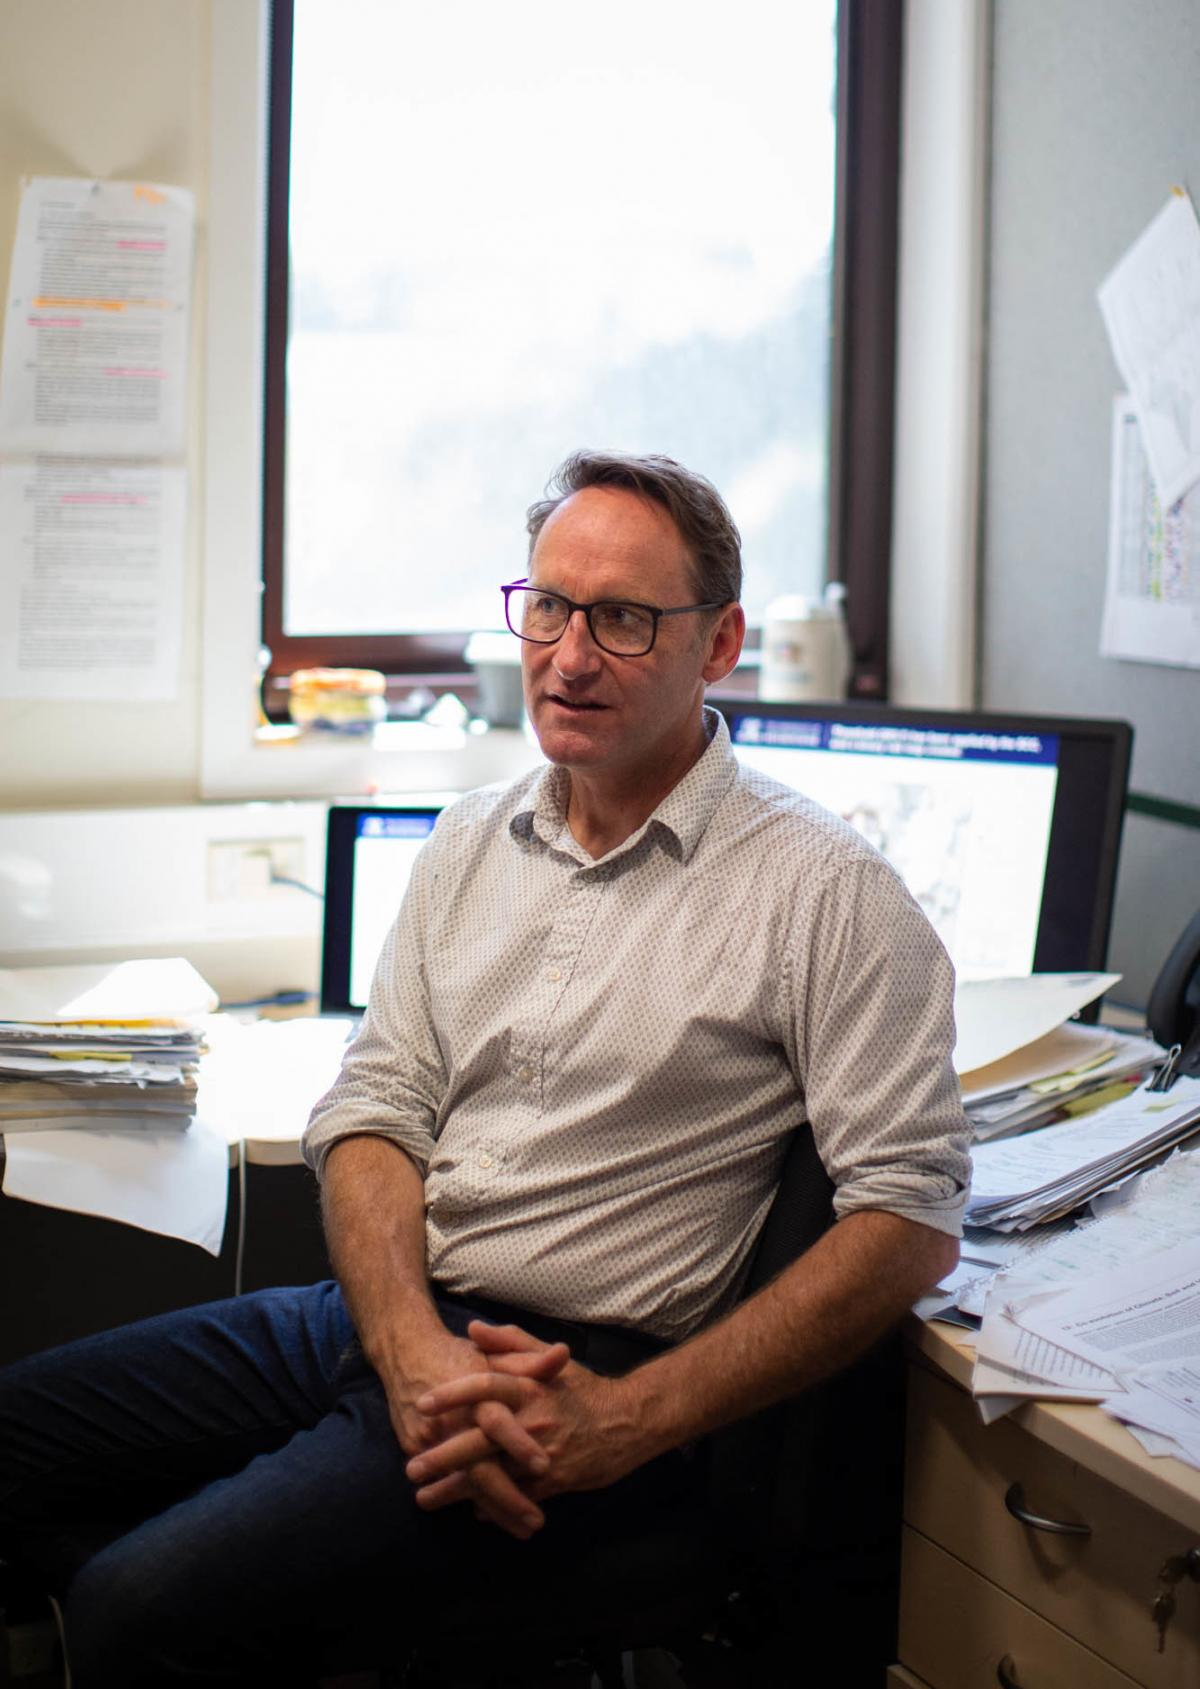 Soil scientist Gary Sheridan has been studying how slope steepness, fire severity and soil type can all influence whether a debris flow might happen. He argues that mudslides are not freak events but can be better predicted.